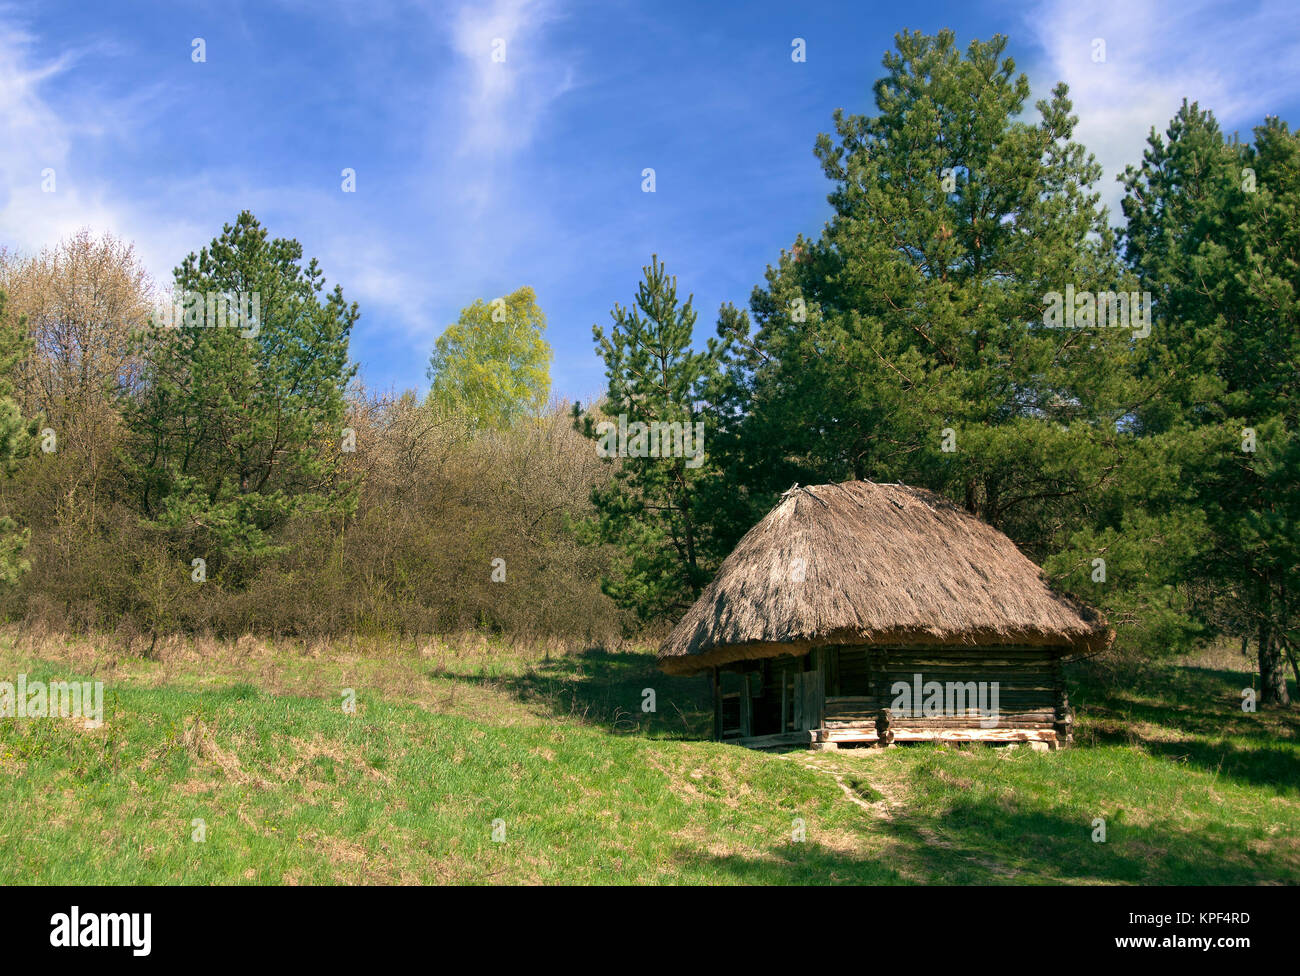 Old Small Wooden Hut In The Forest